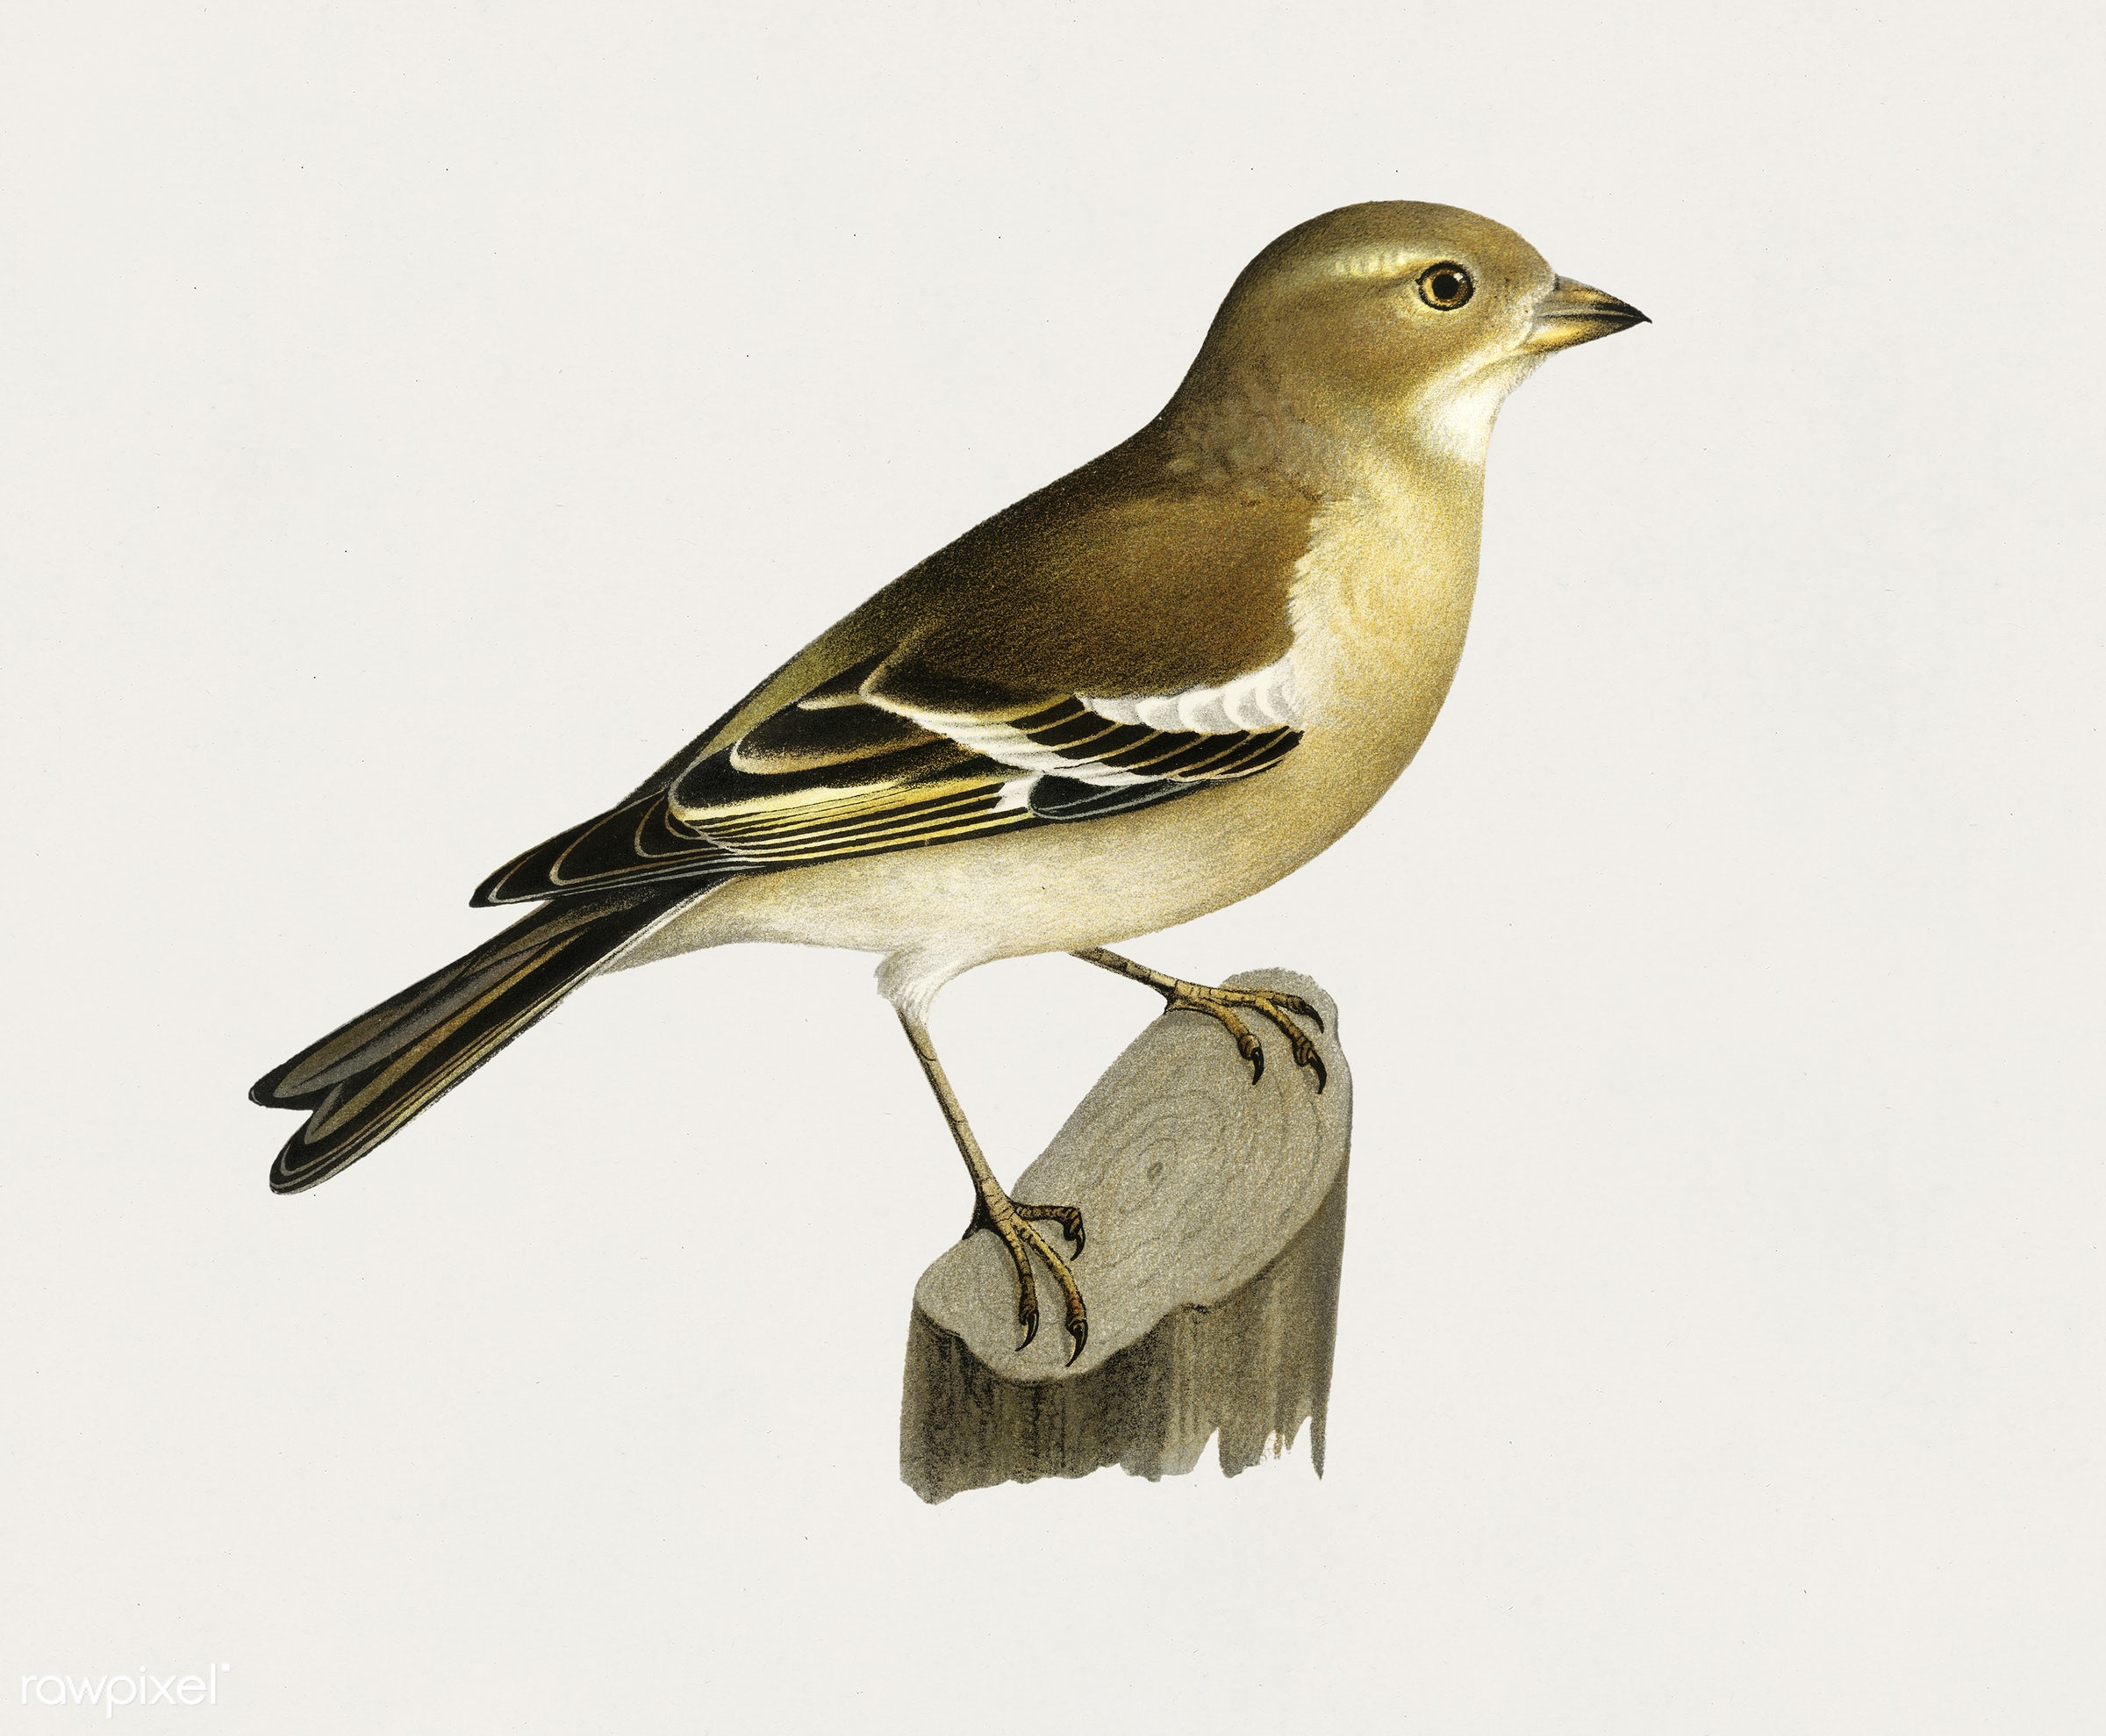 Chaffinch female (Fringilla coelebs) illustrated by the von Wright brothers. Digitally enhanced from our own 1929 folio...